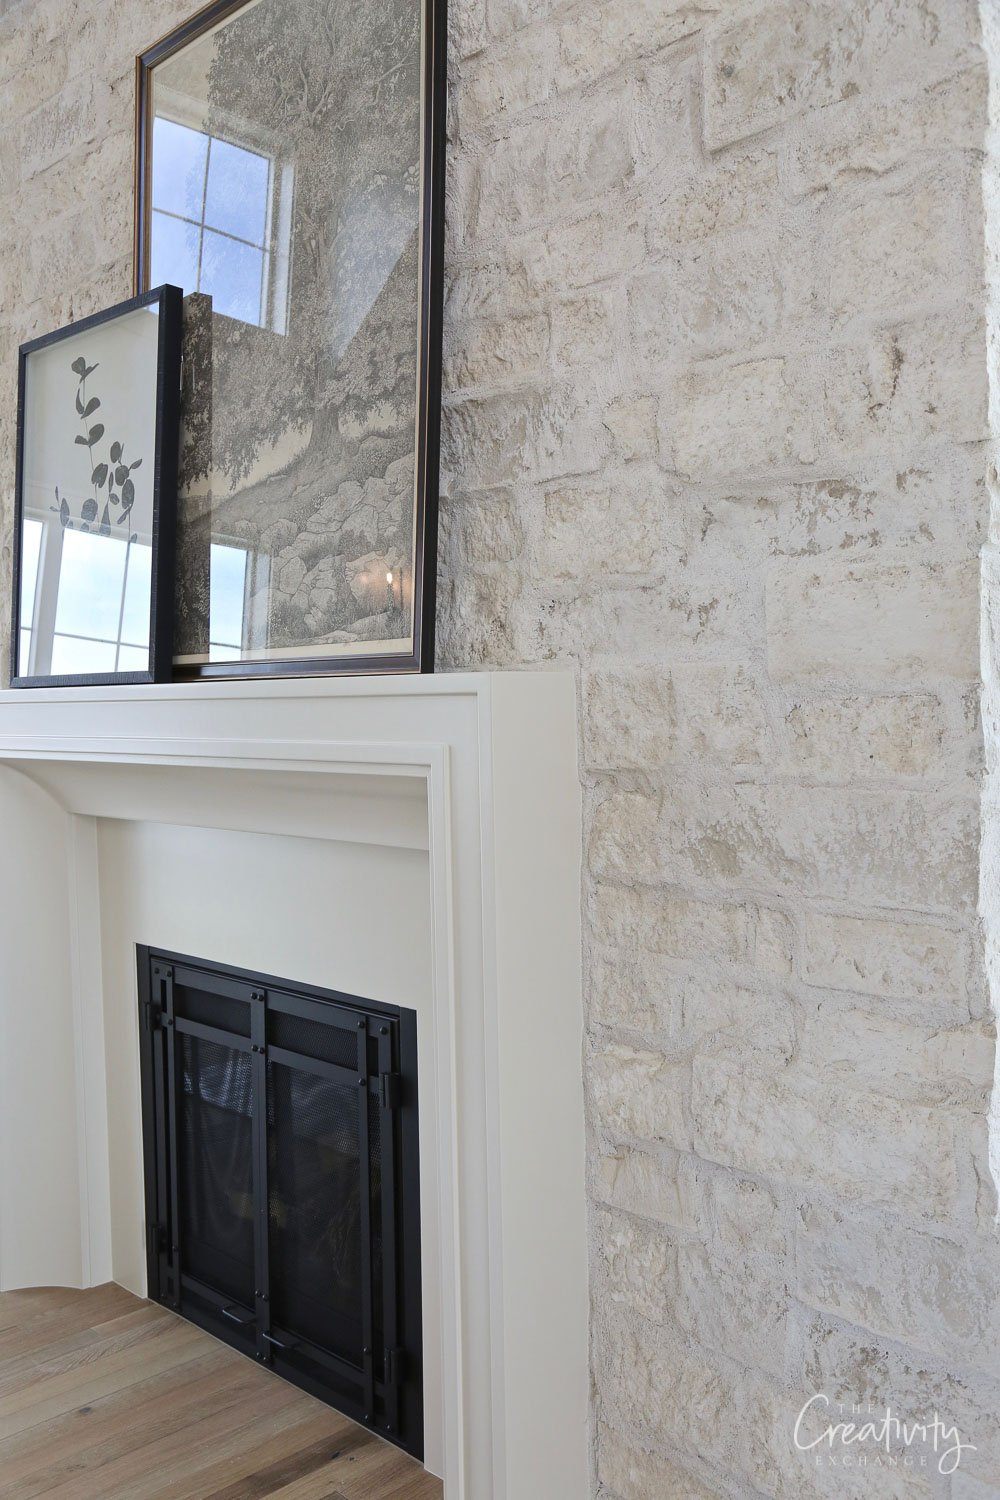 Thin stone veneer wall with a tick mortar wash over the surface